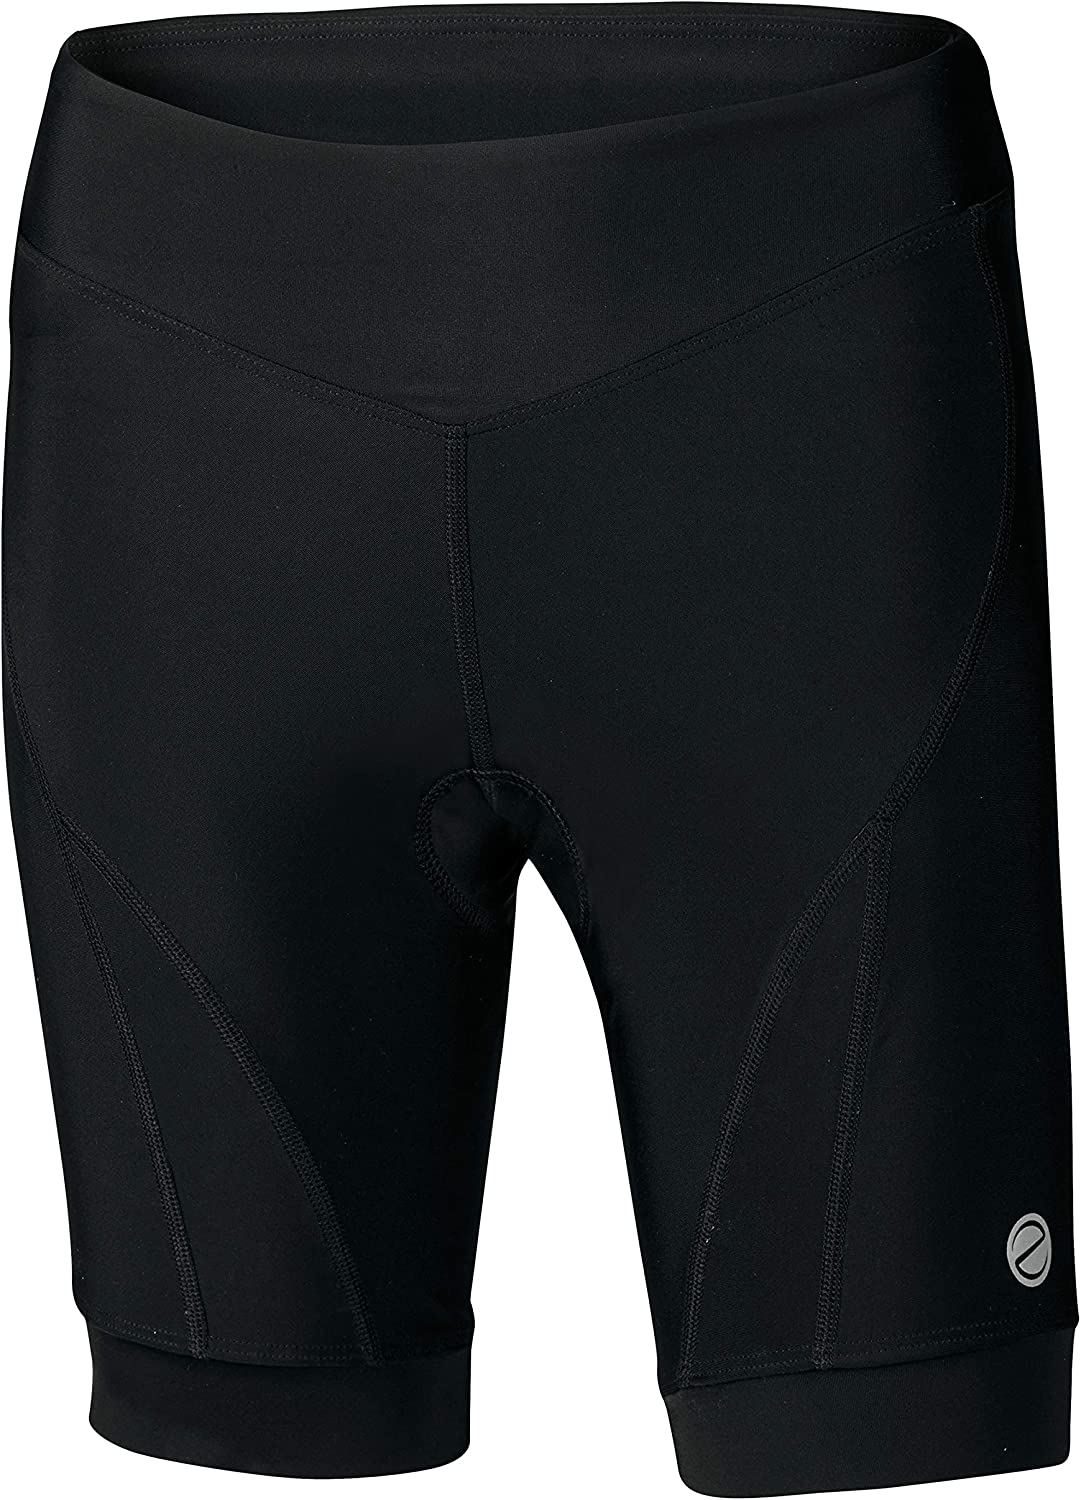 BDI Cycling Apparel Elitta Women's Pro Italia Shorts